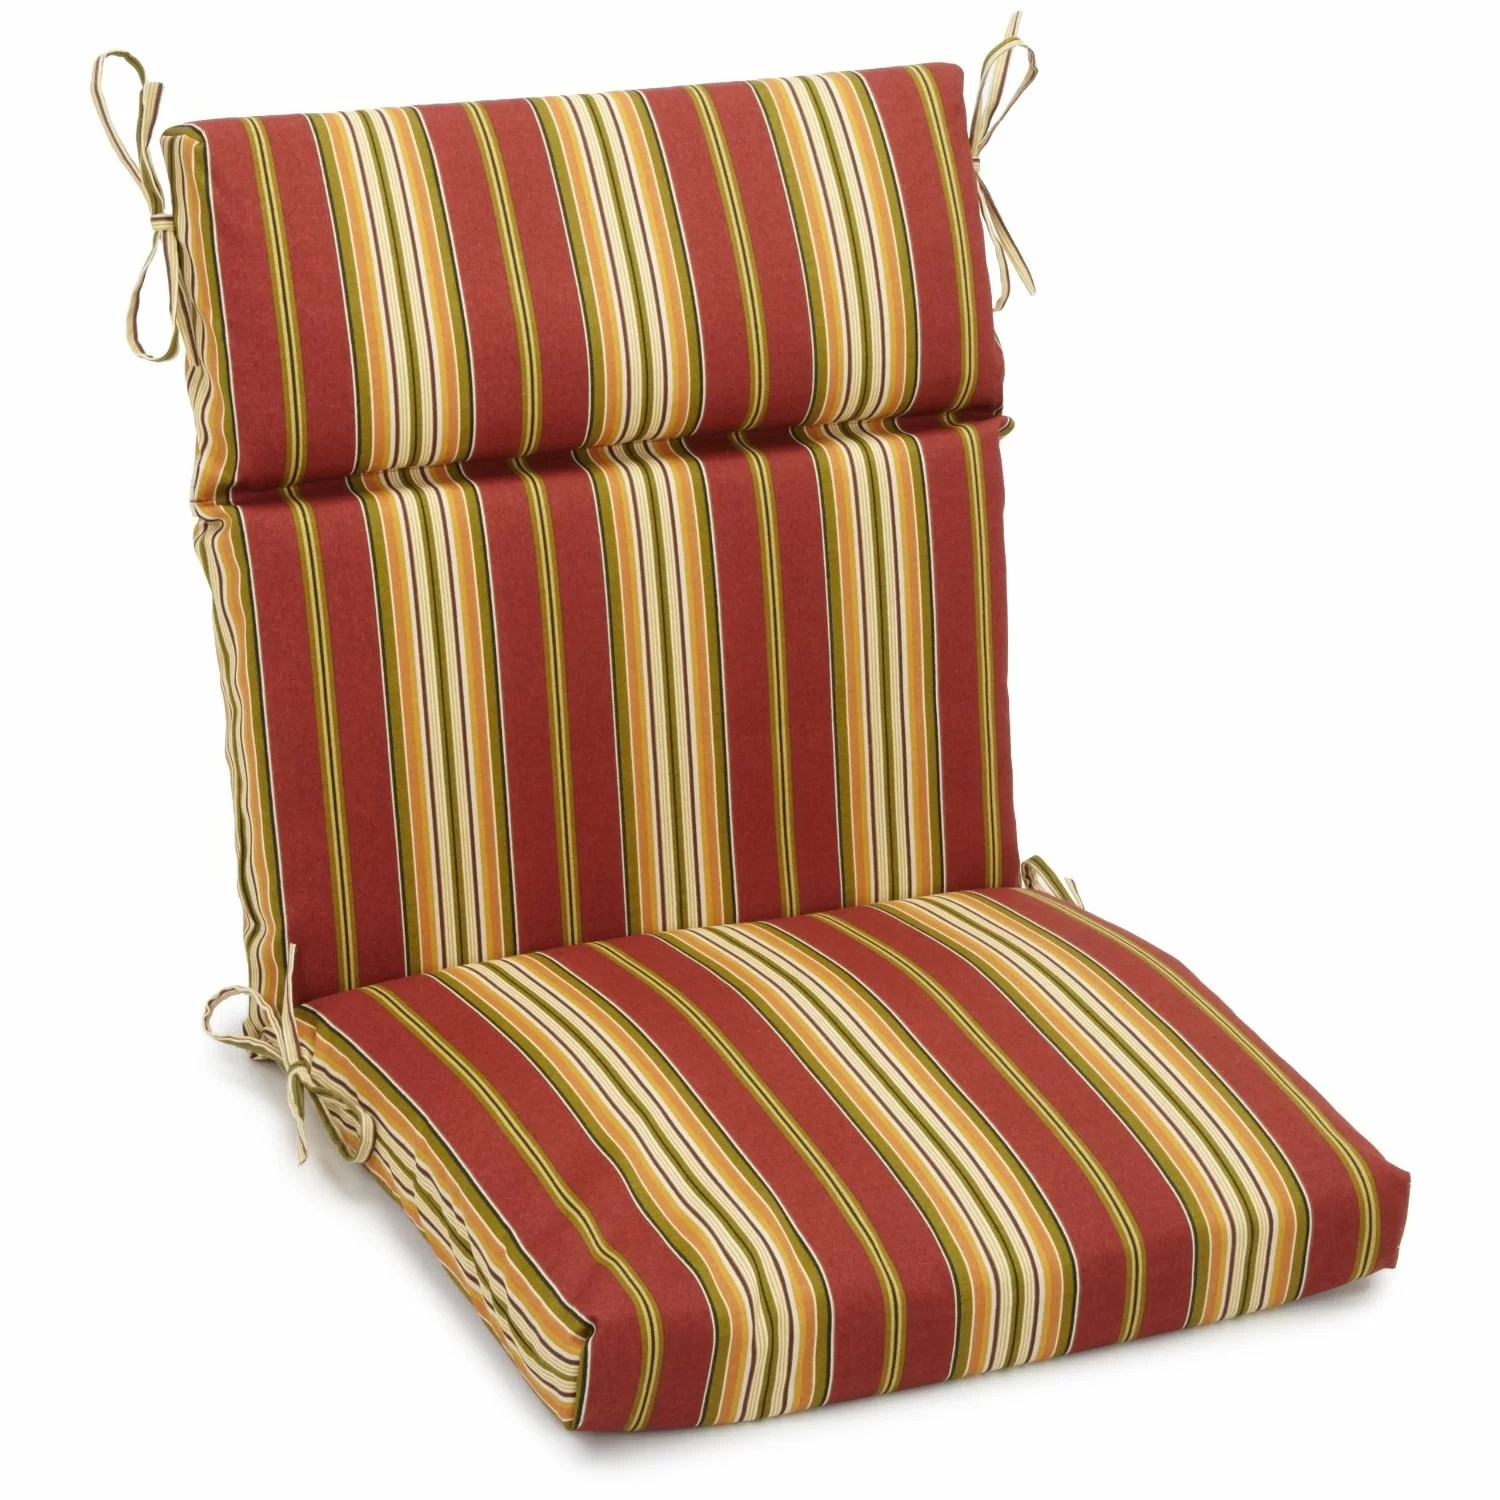 adirondack chairs cushions back pillow for chair blazing needles outdoor cushion ebay